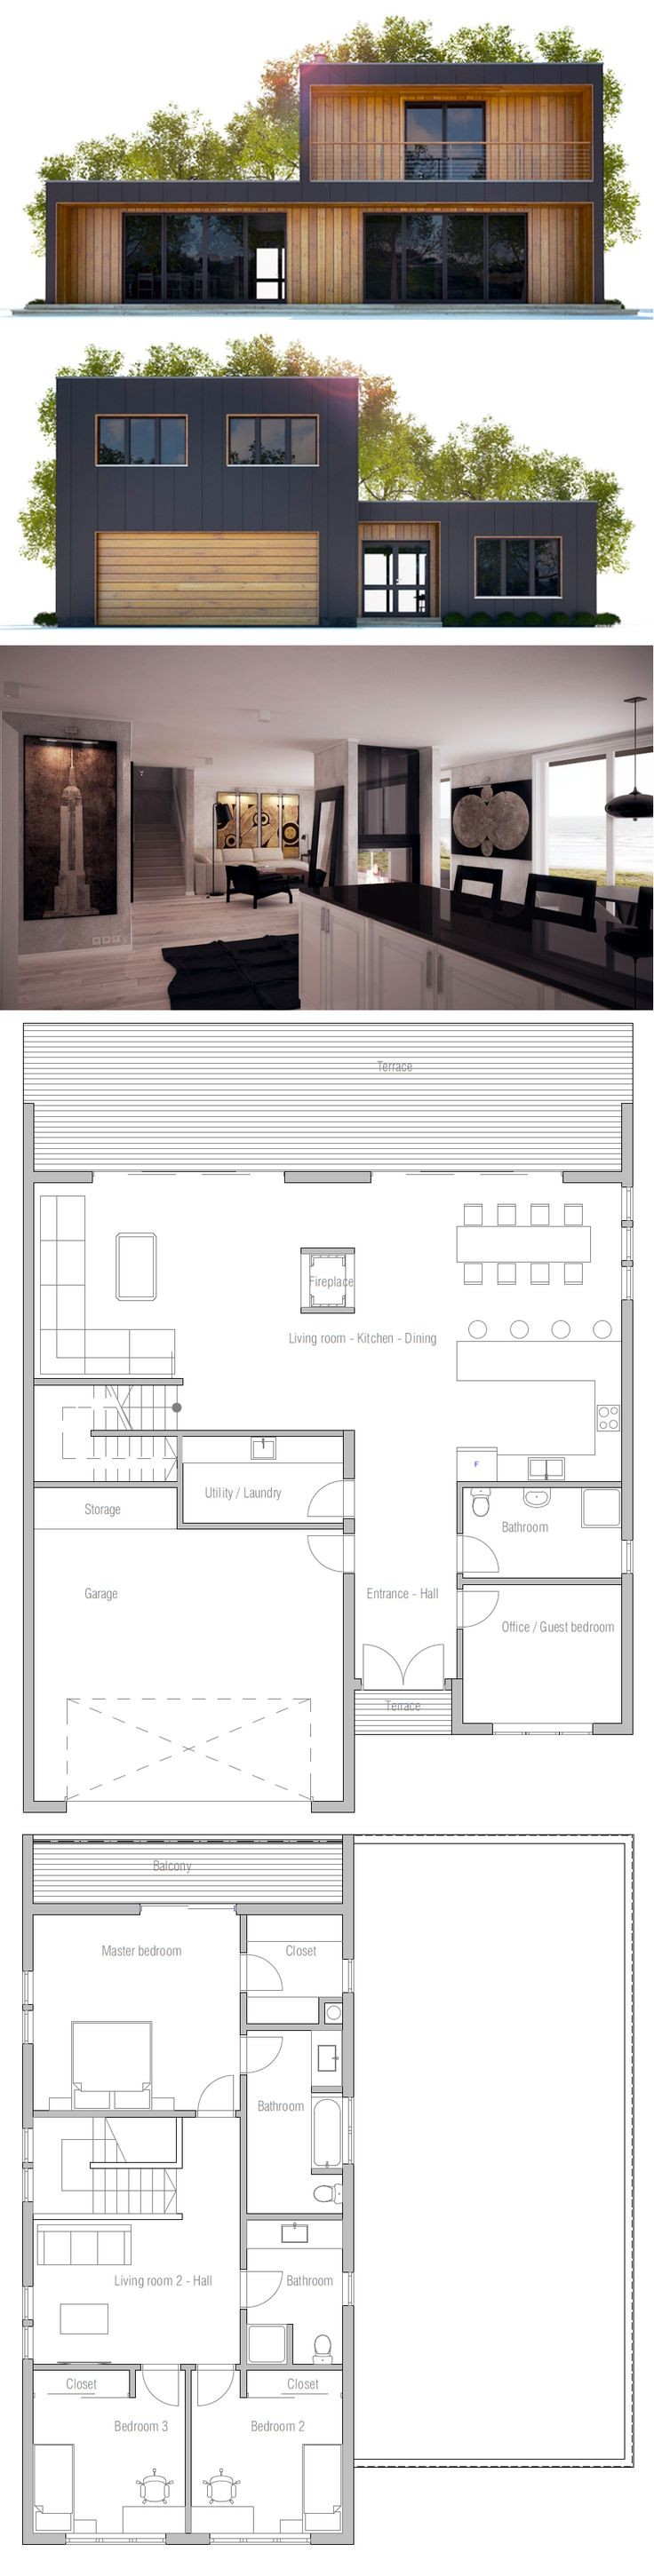 Best 25 Container house plans ideas on Pinterest Shipping